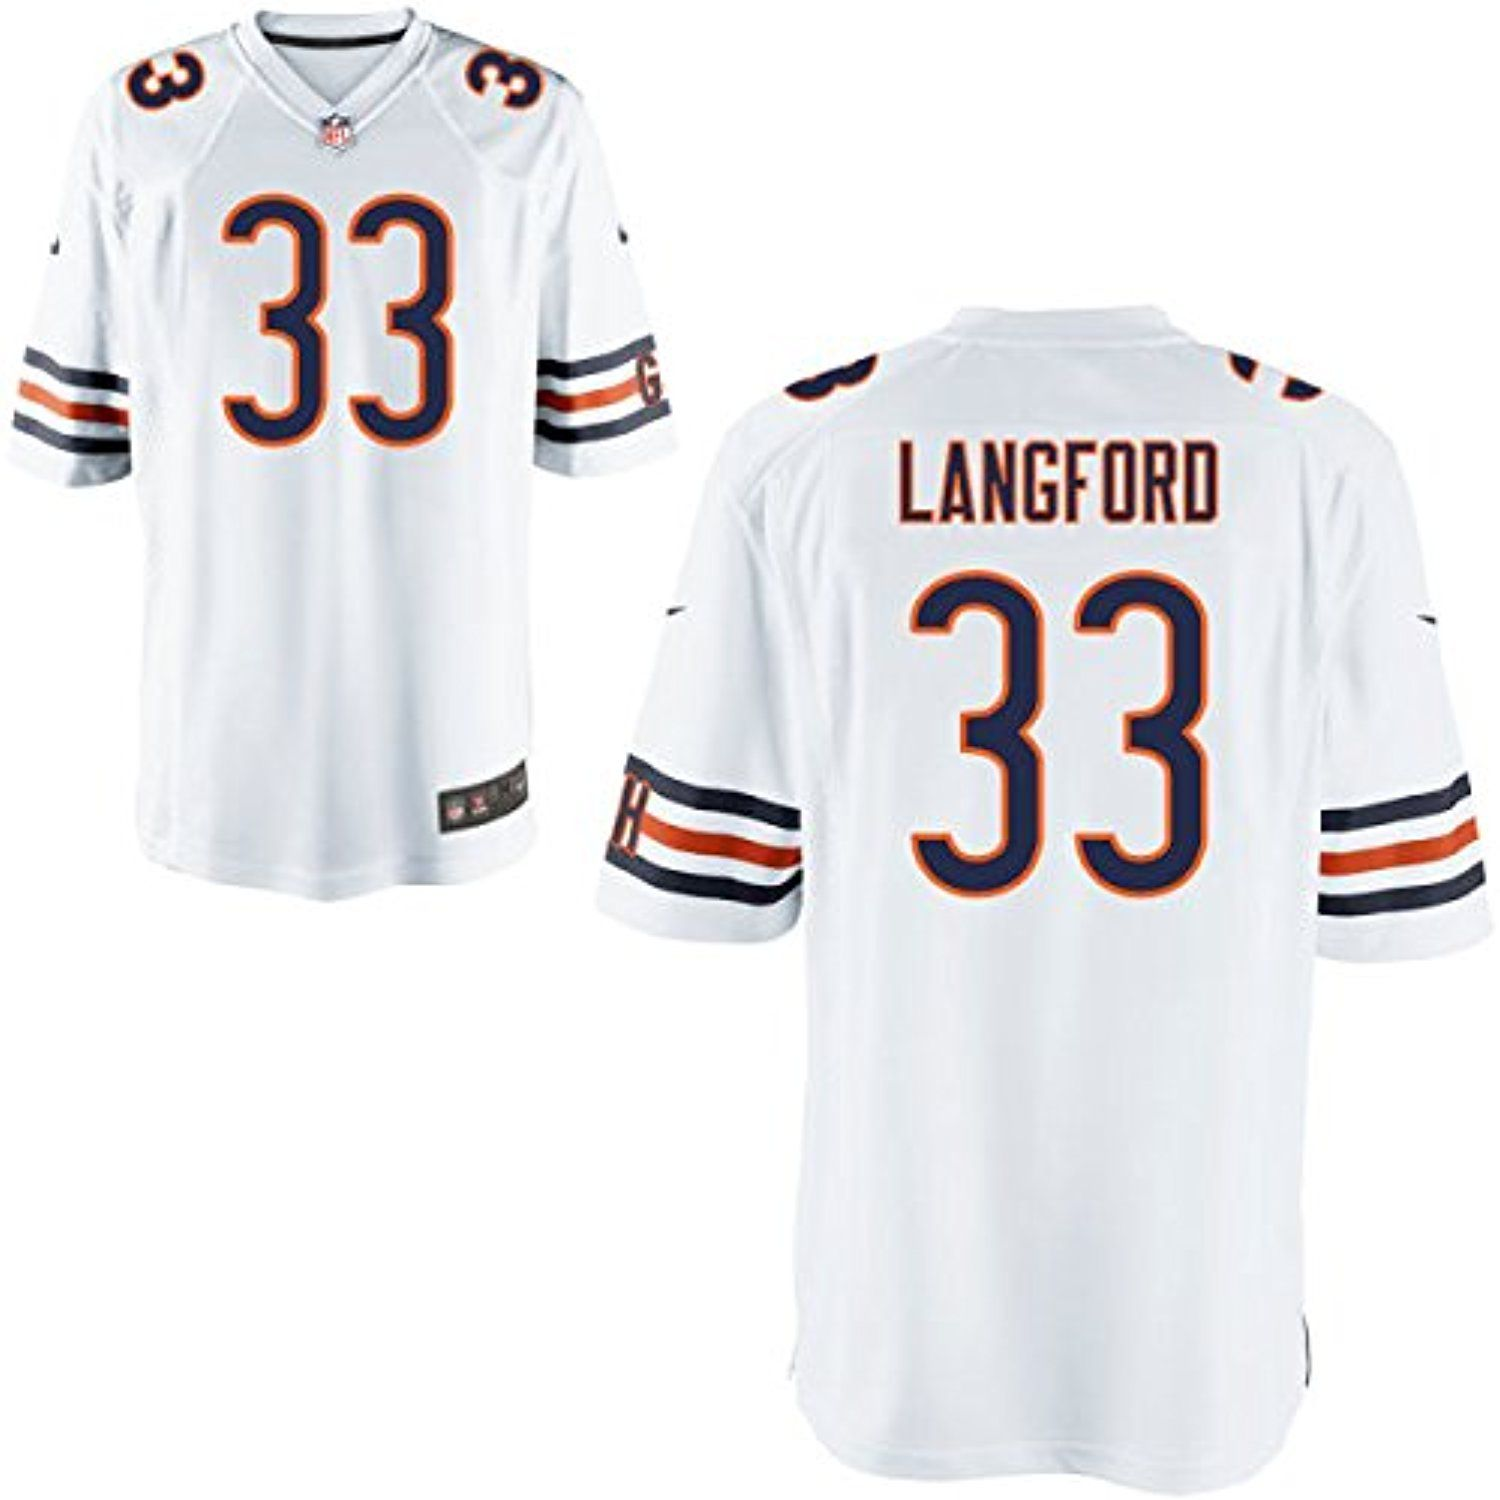 ... 33 Charles Tillman Elite White Jersey nike nfl jersey Mens Nike NFL Chicago  Bears 99 Mcmclellin Elite white jersey on sale nfl ... ece96def1